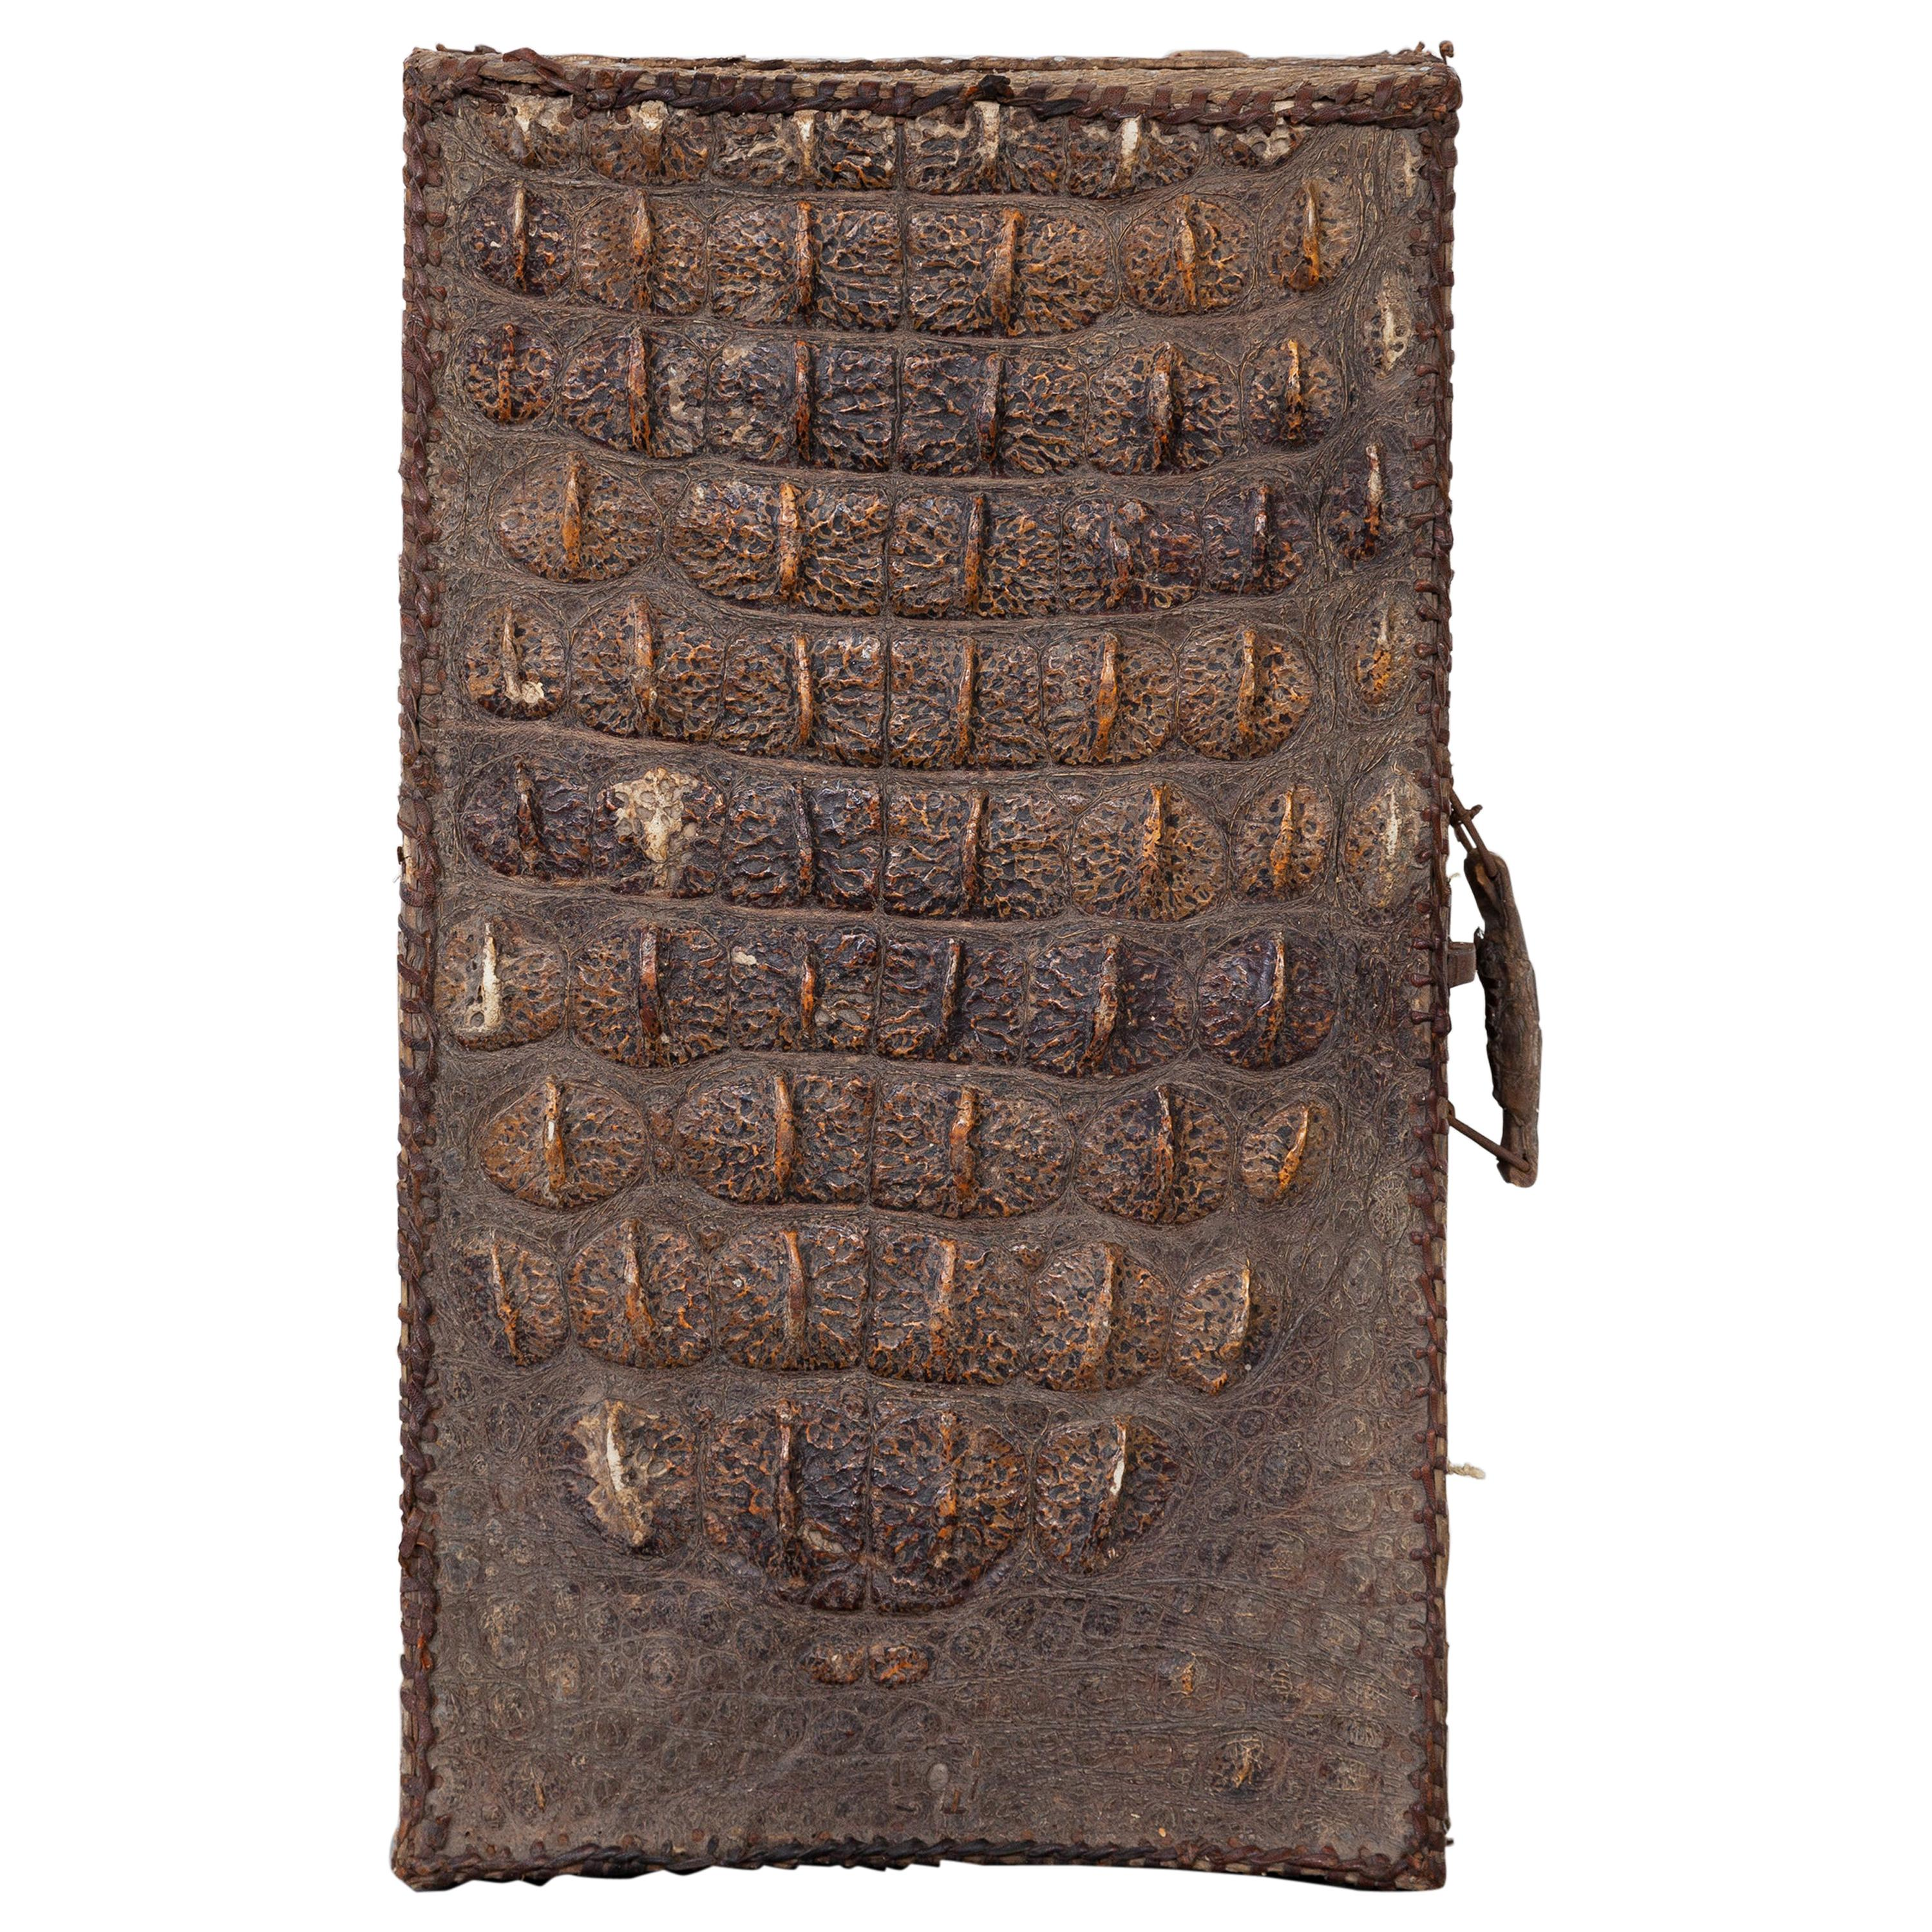 Antique Luggage Crocodile Skin Leather Suitcase, Colonial